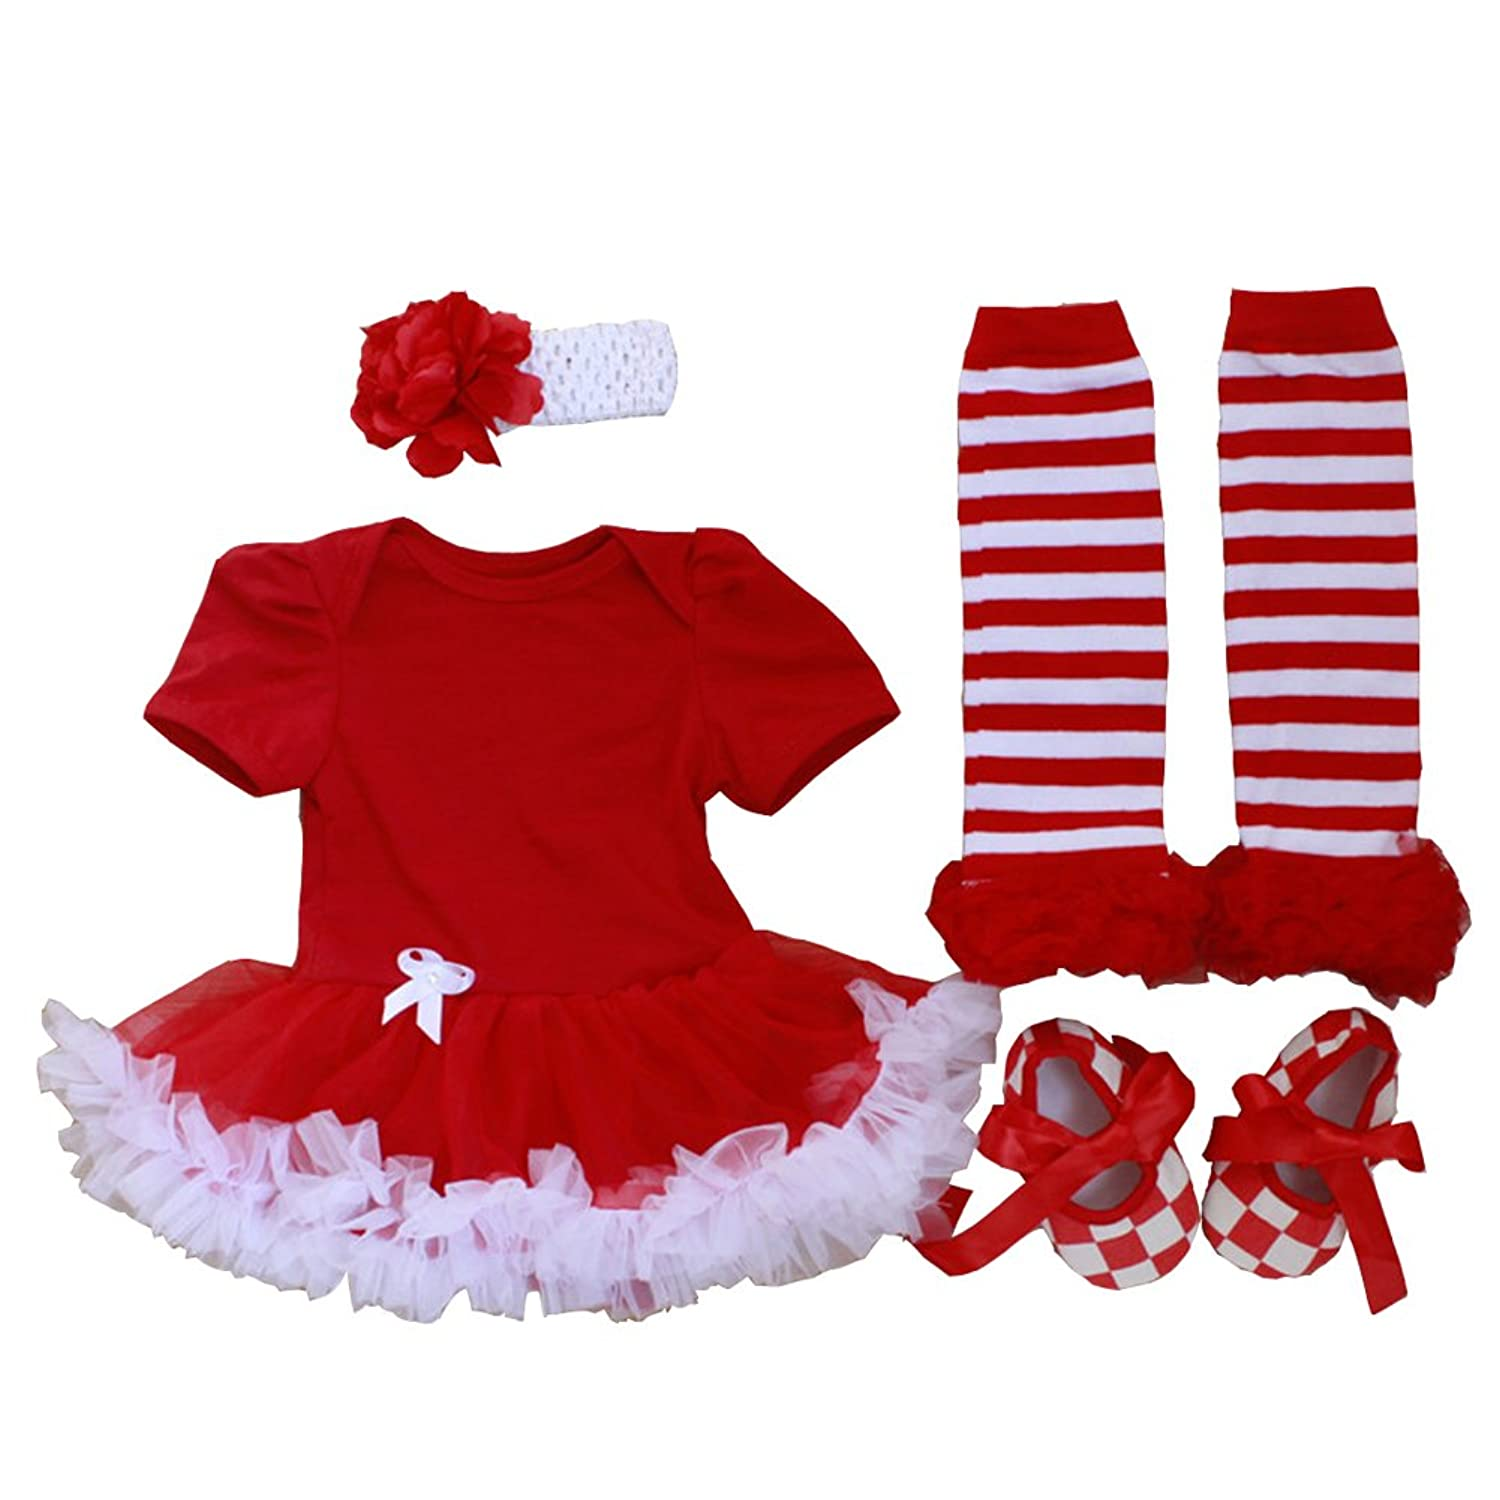 Newborn christmas outfit girl